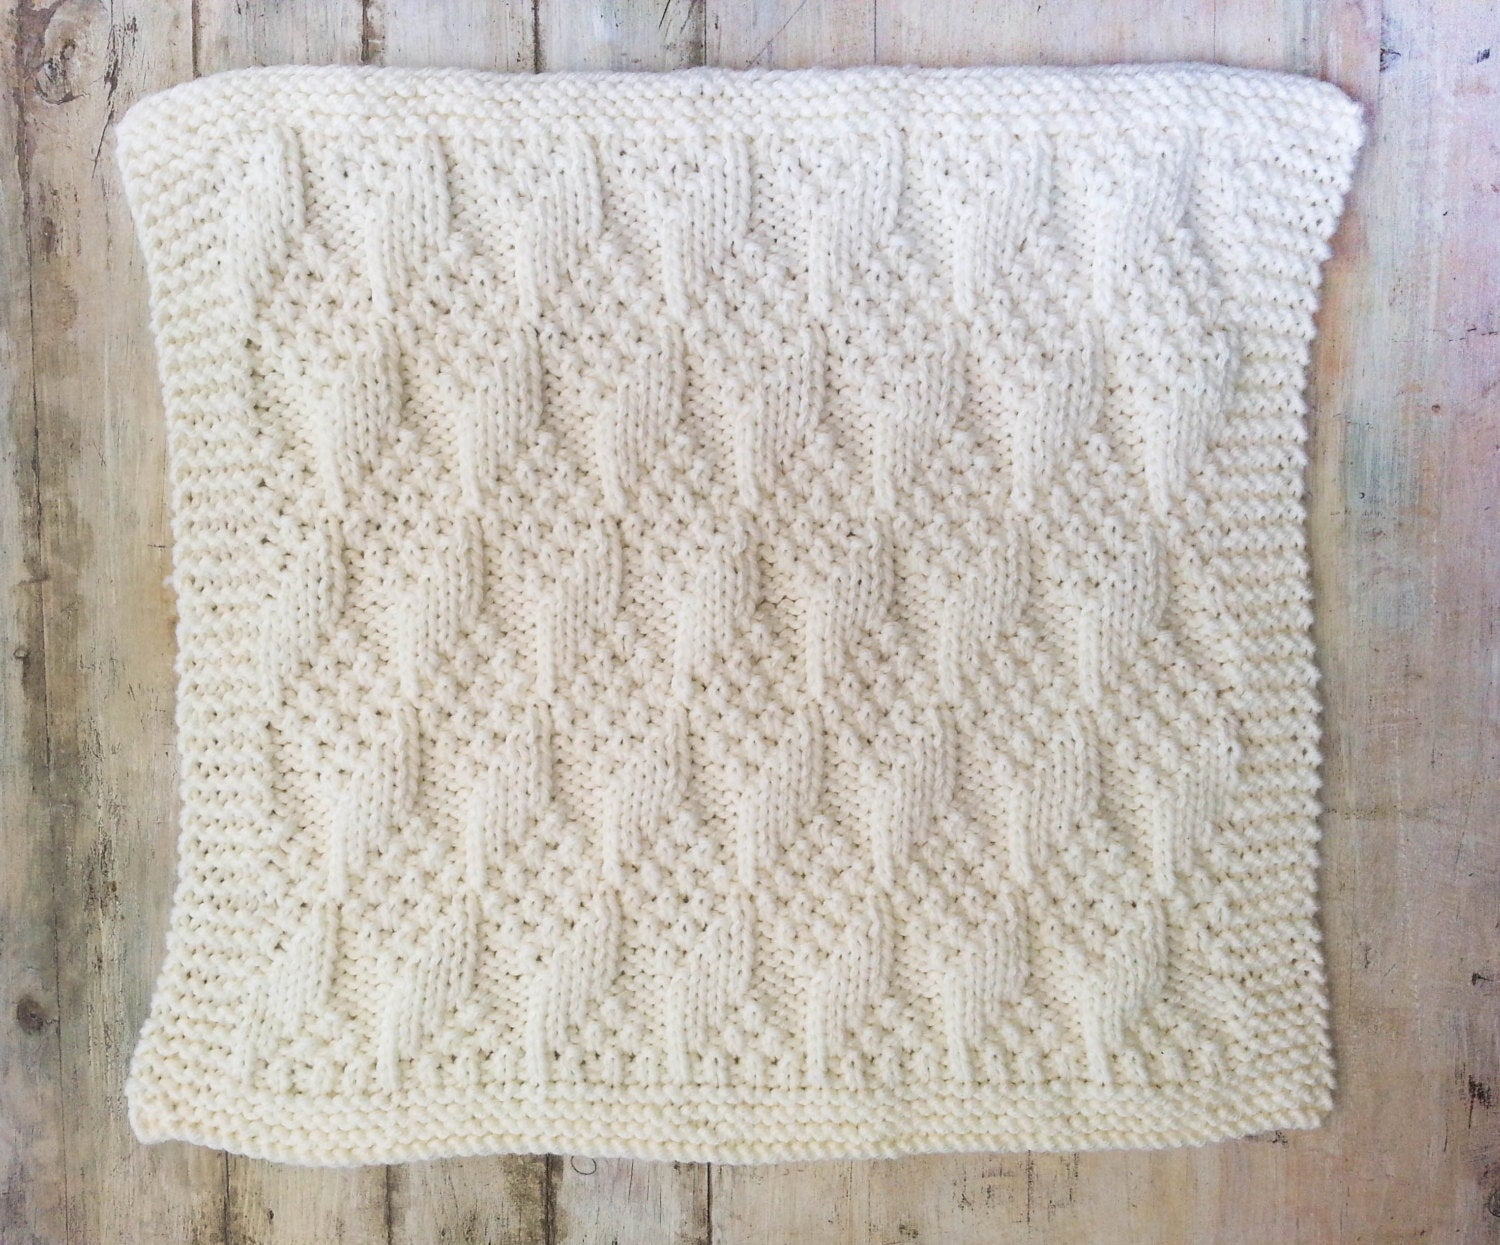 Knitting Pattern For Baby Blankets Knitting Pattern Ba Blanket Bulky Yarn Modern Ba Blanket Chunky Yarn Easy Knitting Pattern Blocks Pattern Ba Afghan